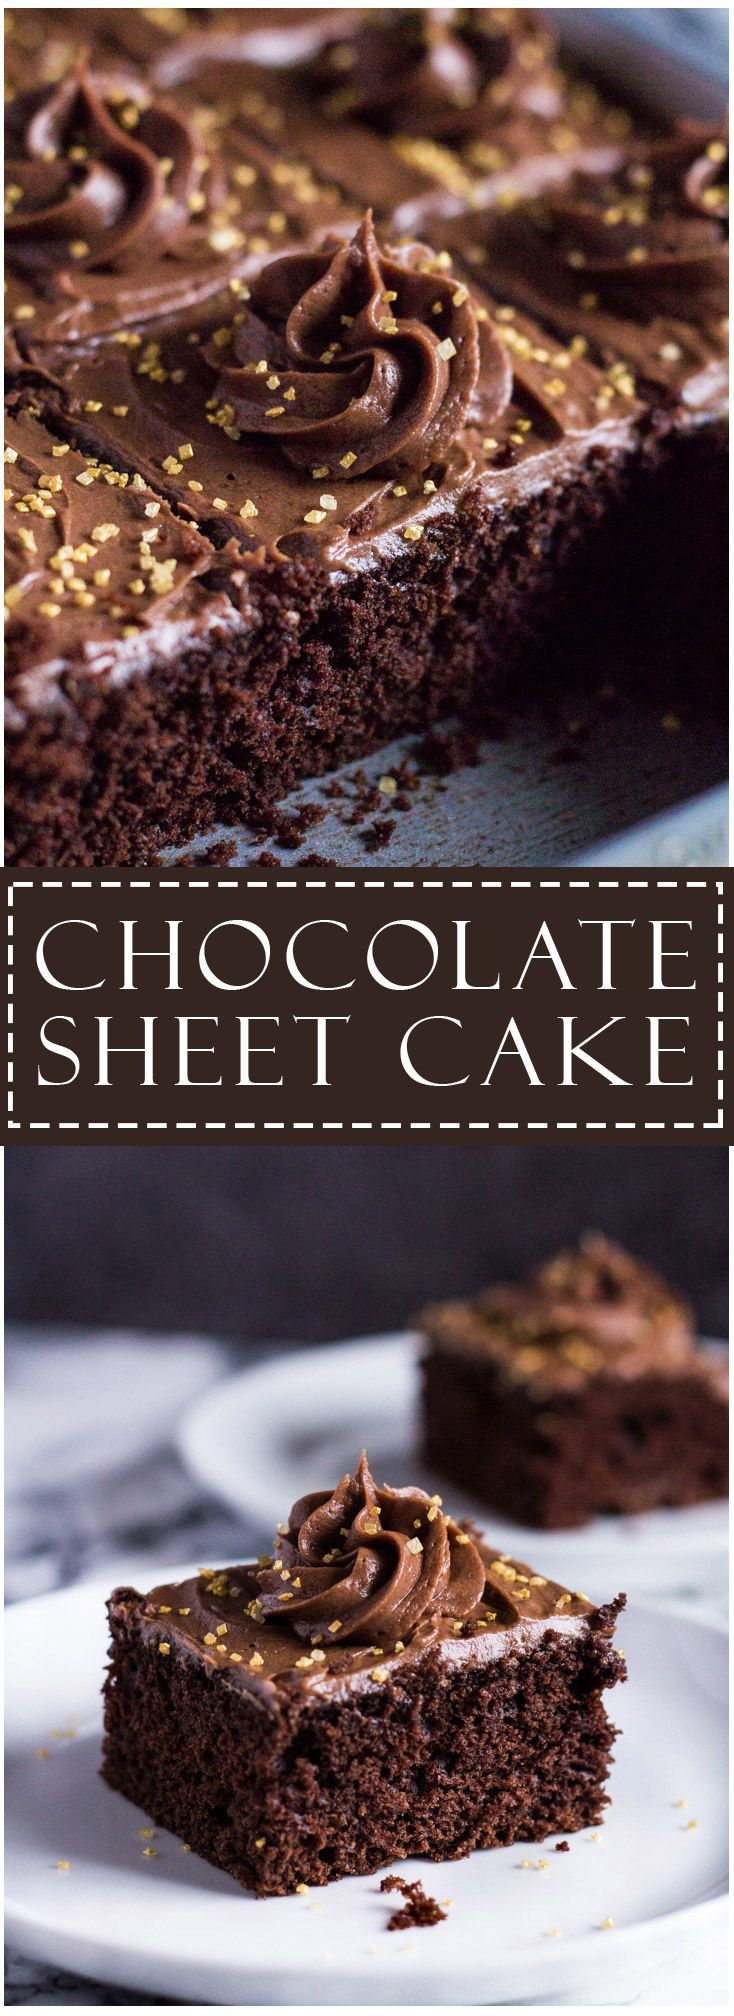 Chocolate Sheet Cake | http://marshasbakingaddiction.com /marshasbakeblog/